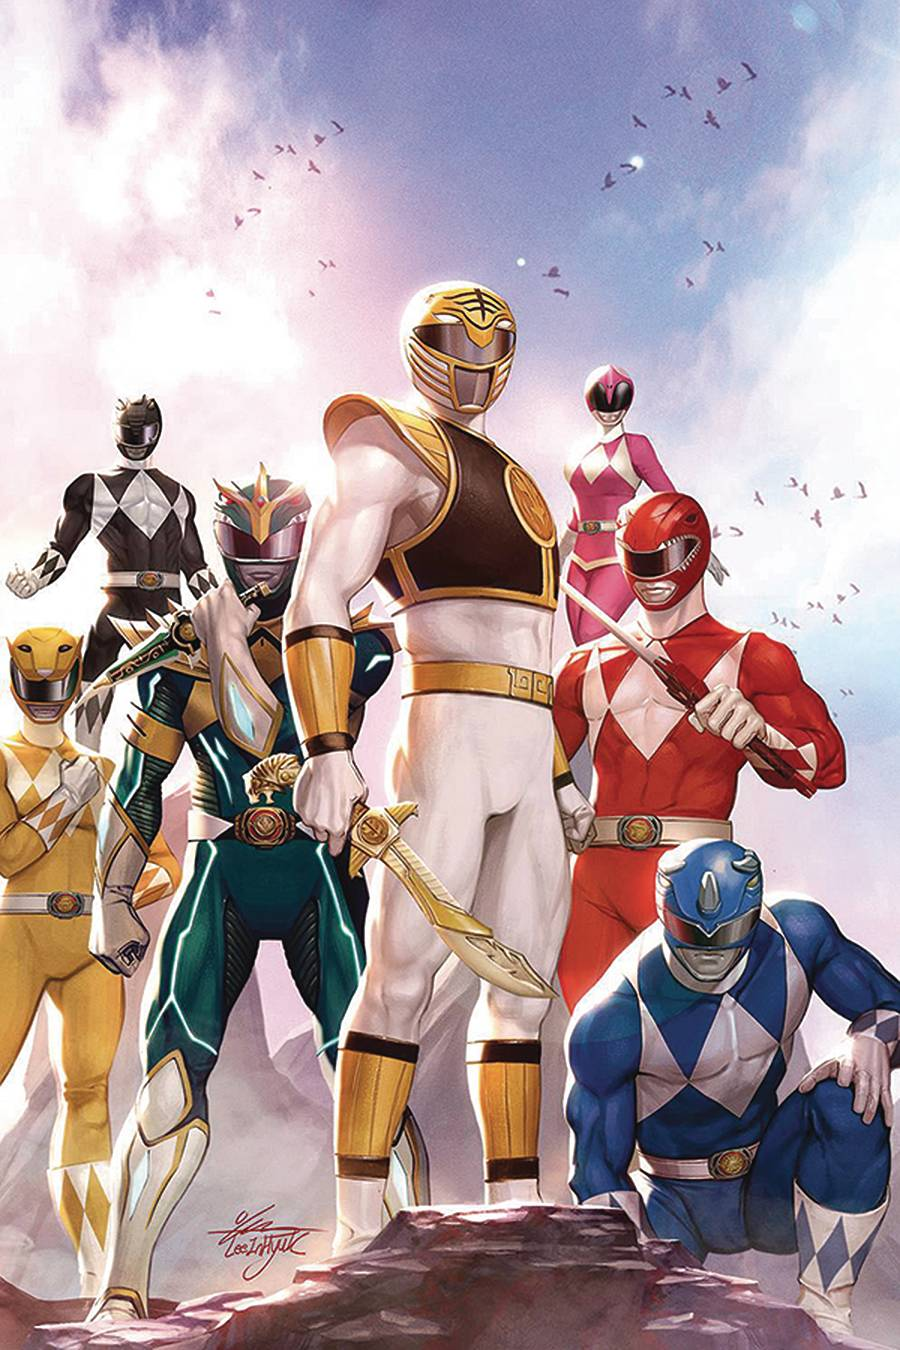 DF MIGHTY MORPHIN #1 PARROTT SGN